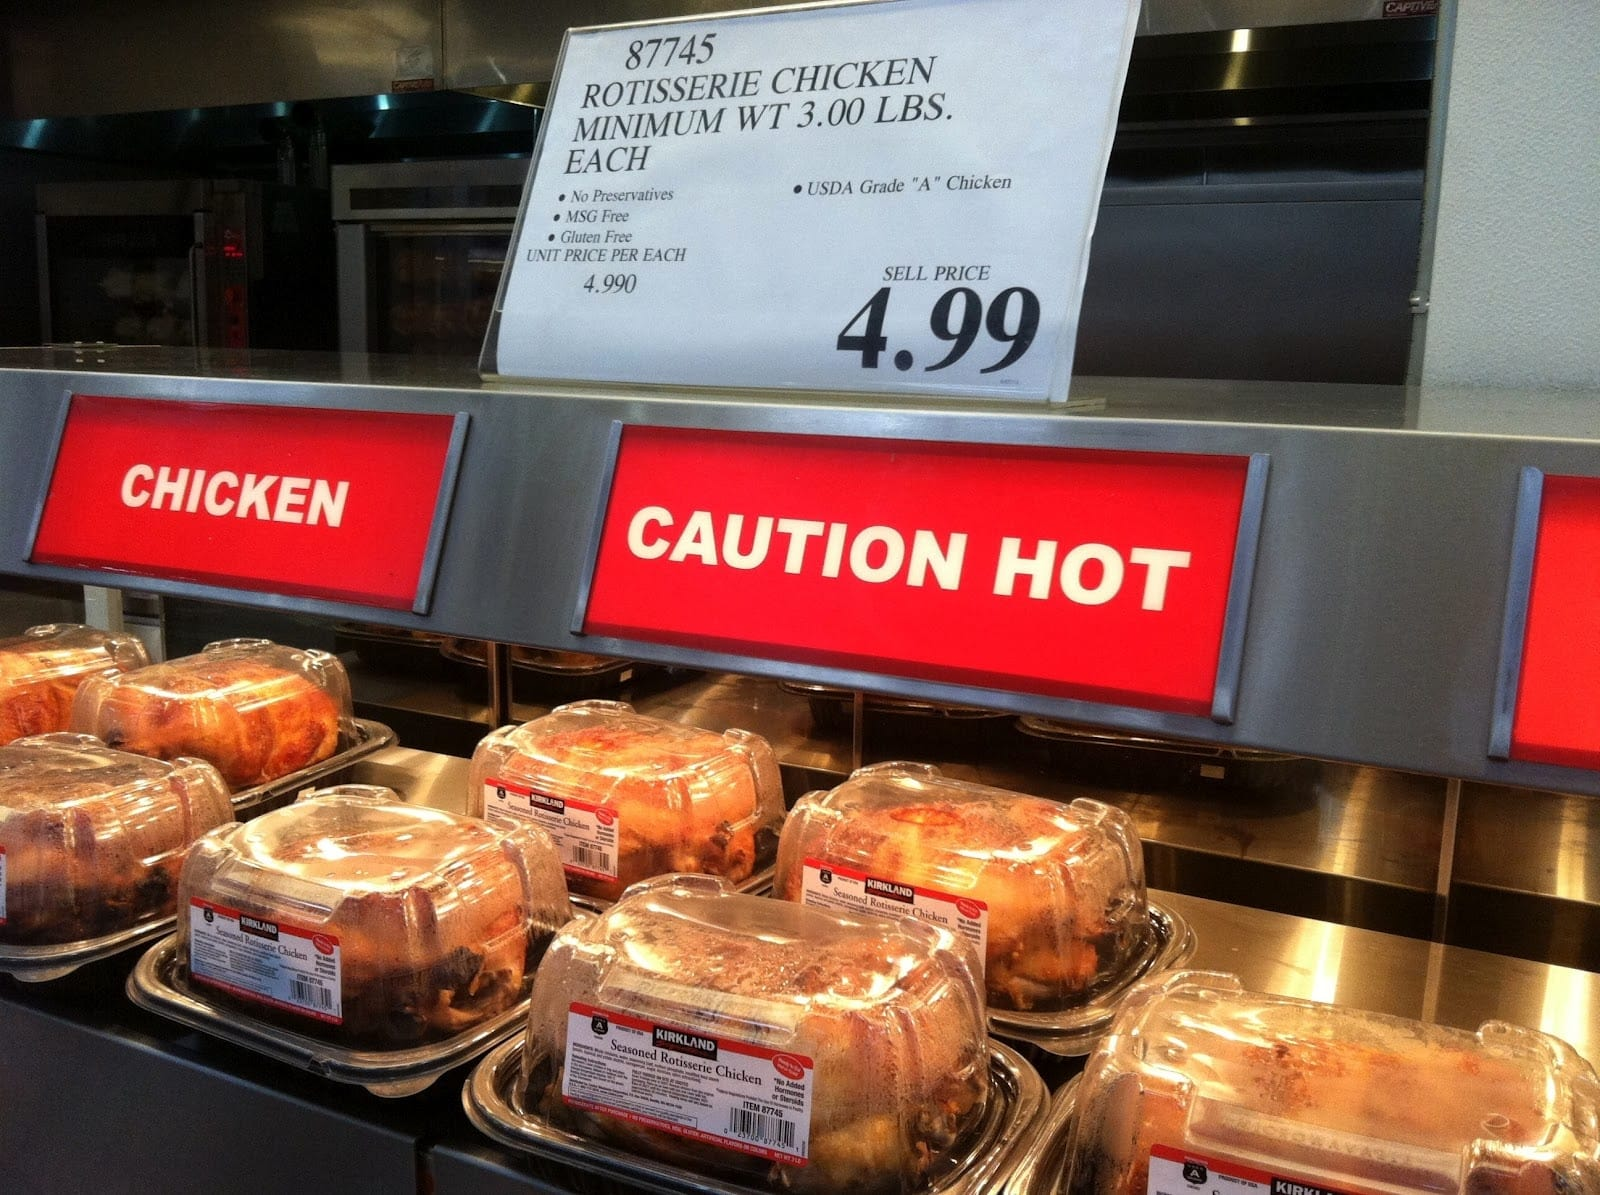 costco loses money on their cheap rotisserie chicken - Costco